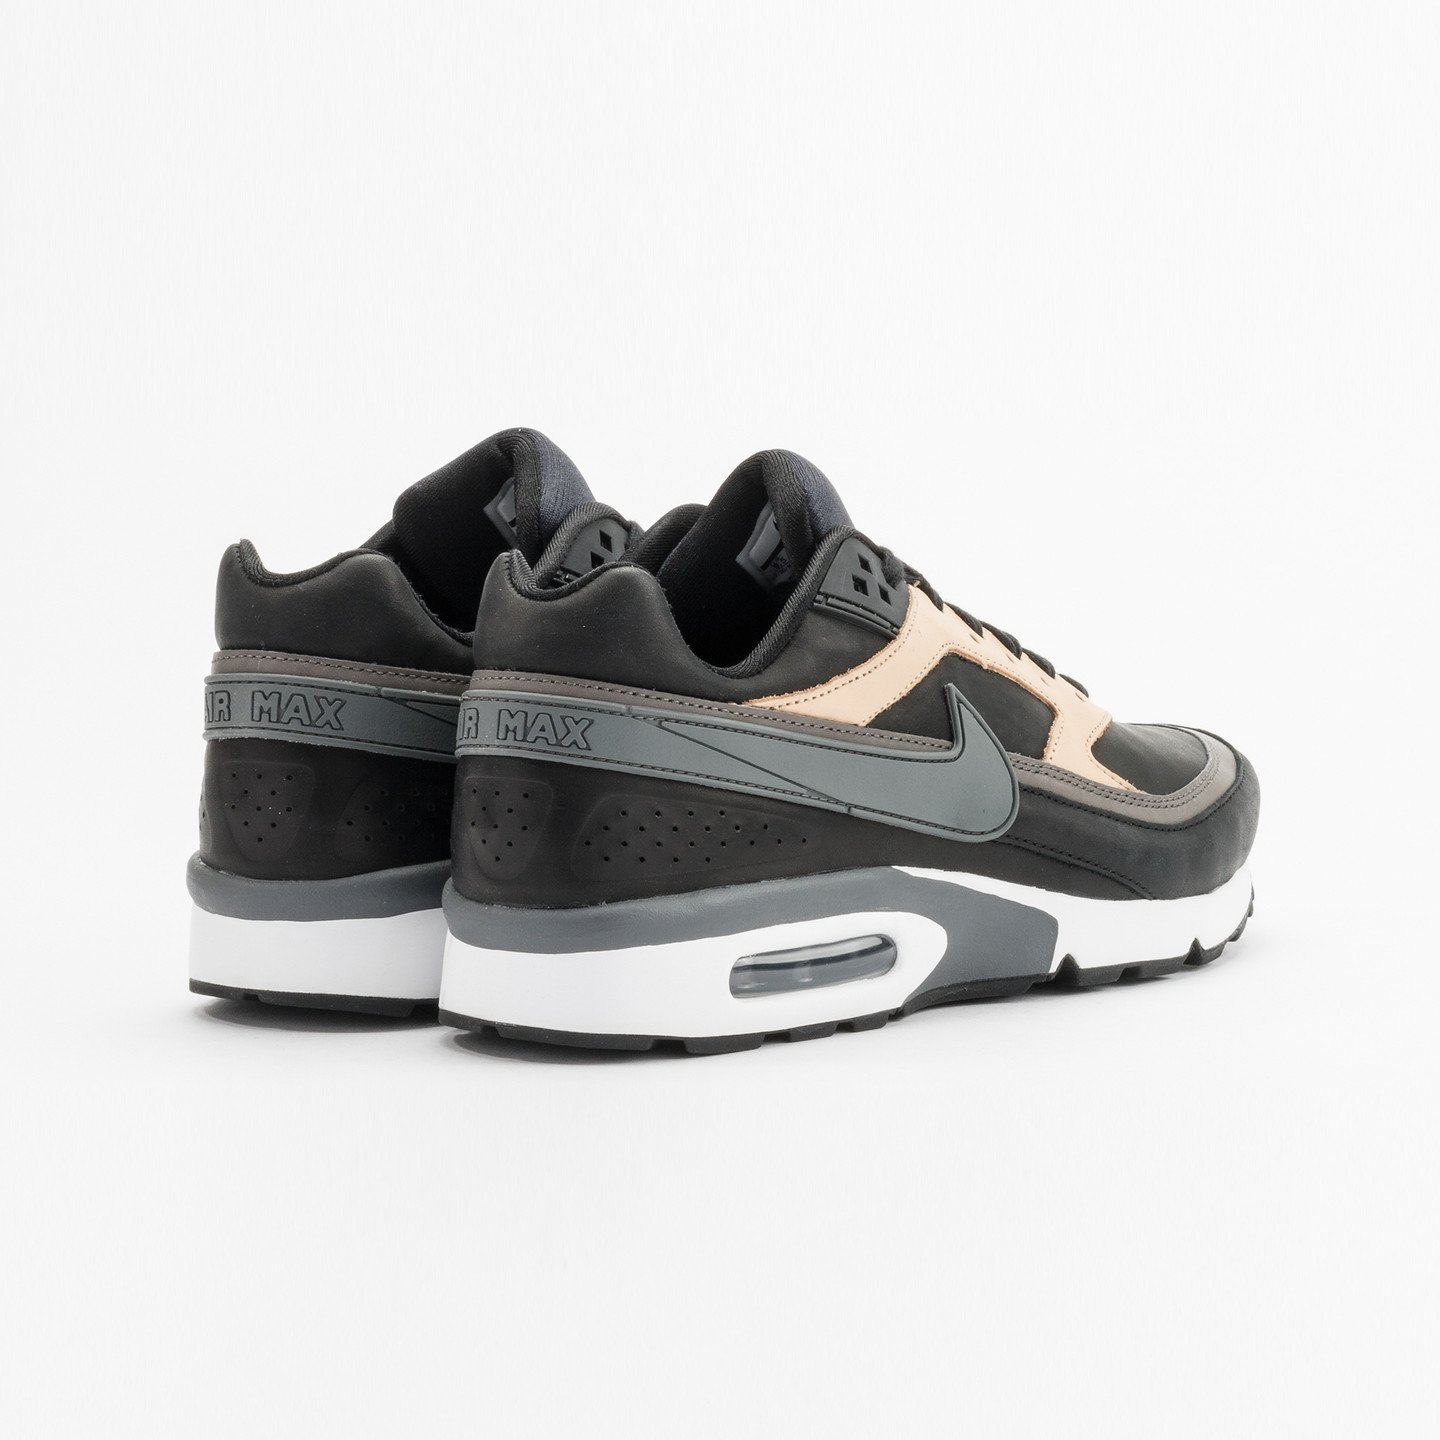 af8b45e94c Nike Air Max BW Premium Leather Black / Dark Grey / Vachetta 819523-001-